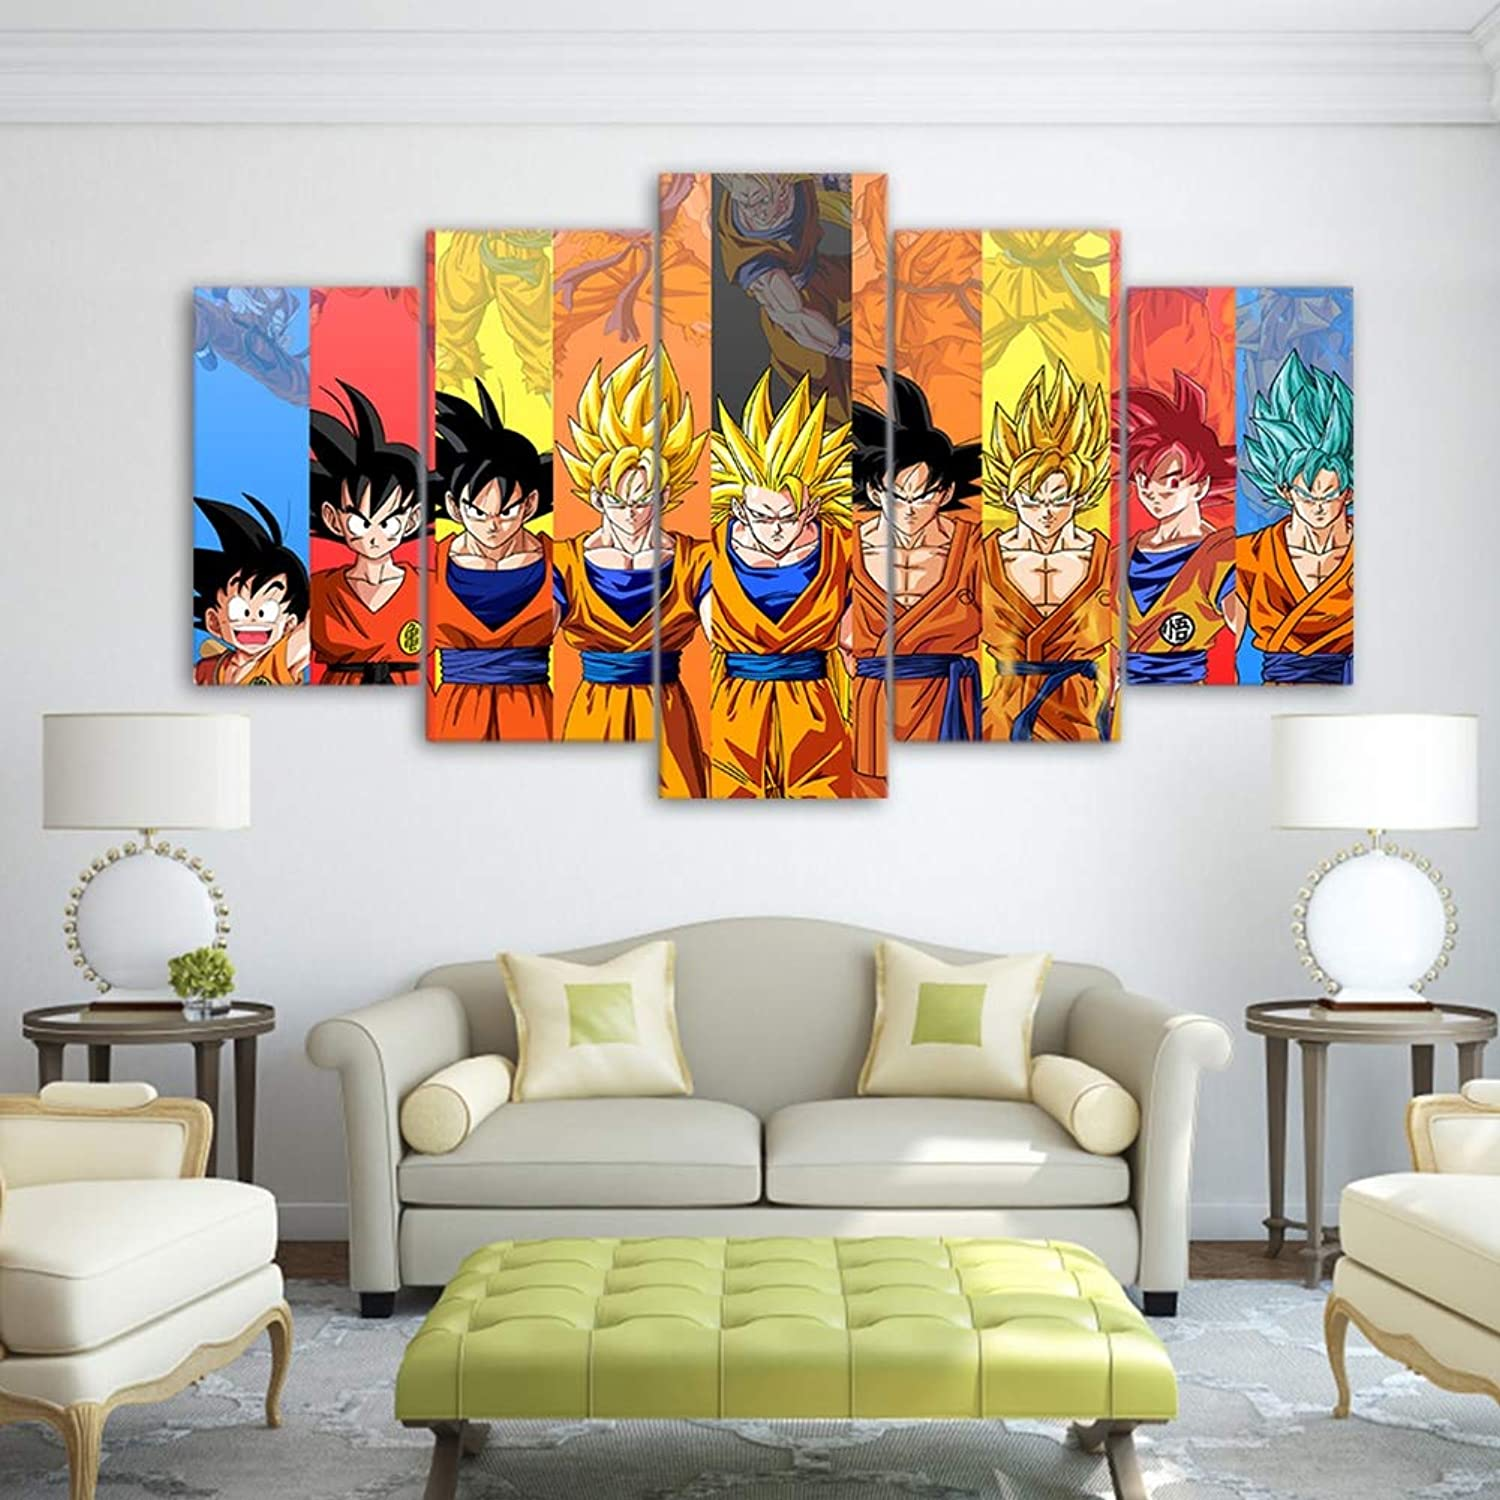 5 Pieces Canvas Art Prints Dragon Ball Poster Goku Modeling Pictures for Living Room Modular Wall Art Oil Painting,B,10X15X210X20X210X25X1